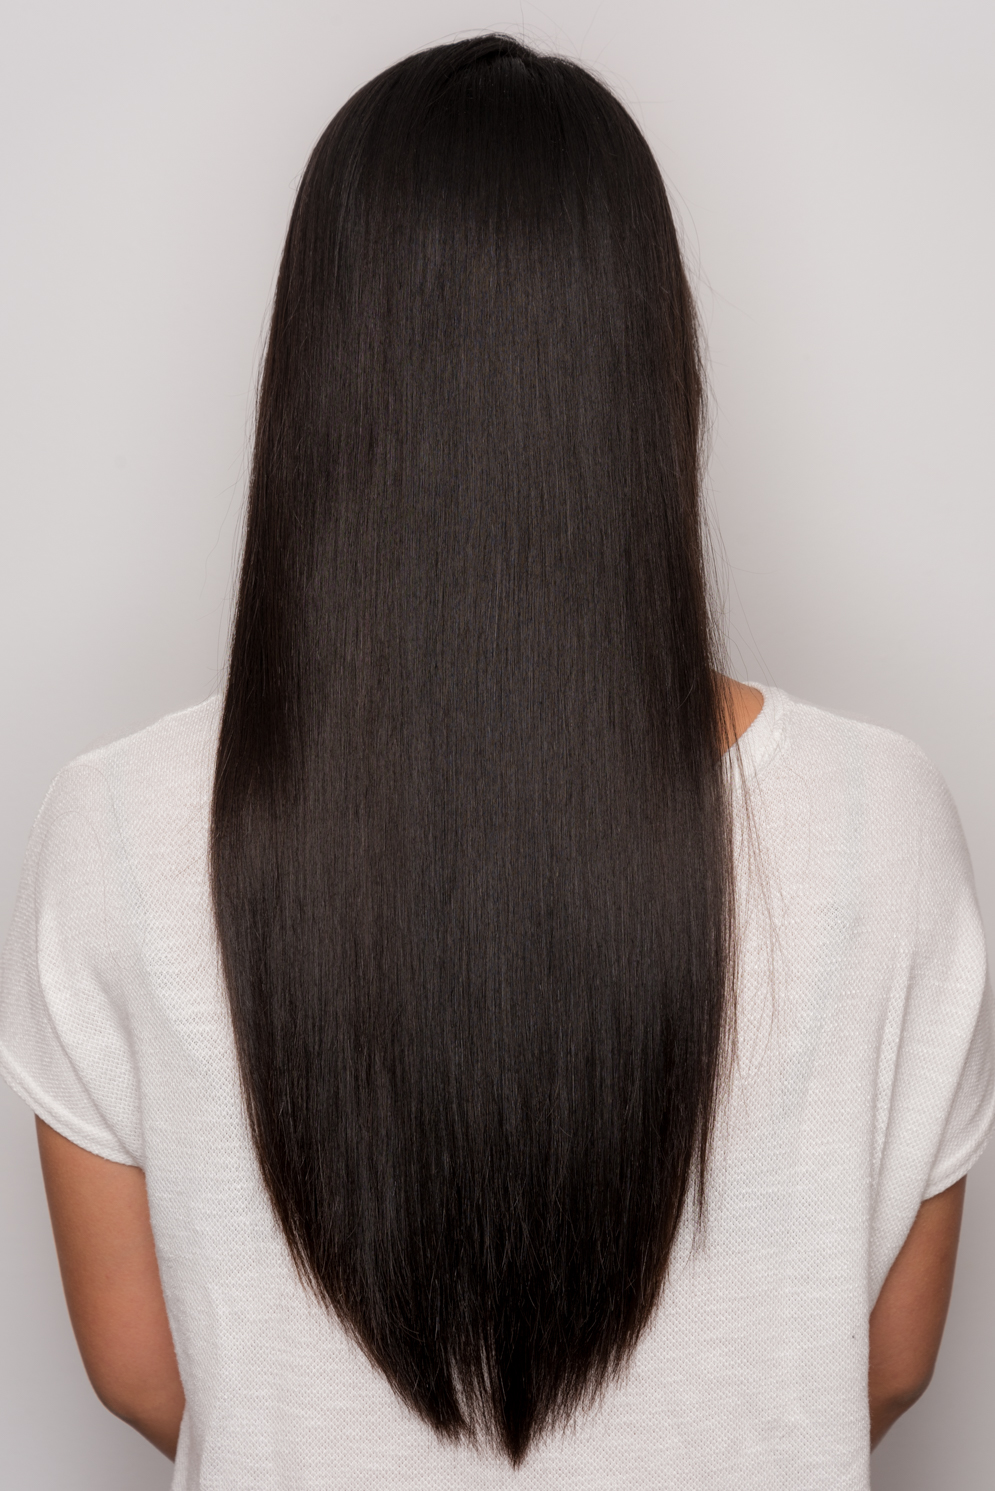 ROCK MAMA NYC LIFESTYLE BLOG - HOW TO USE COCONUT OIL FOR YOUR SCALP AND HAIR TREATMENT